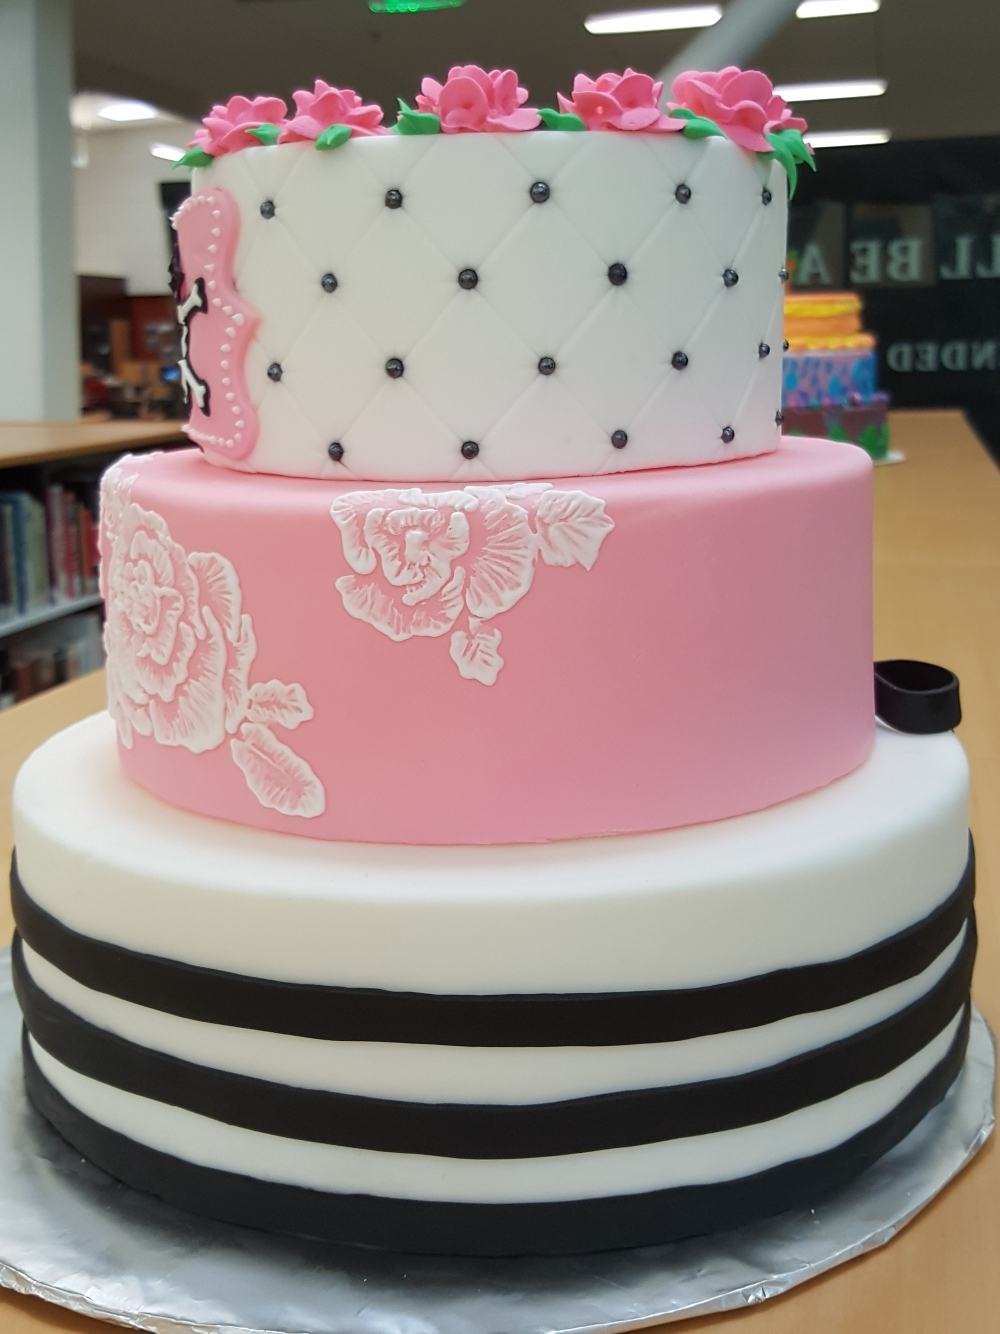 2019 Cakes Pink Skull - side view